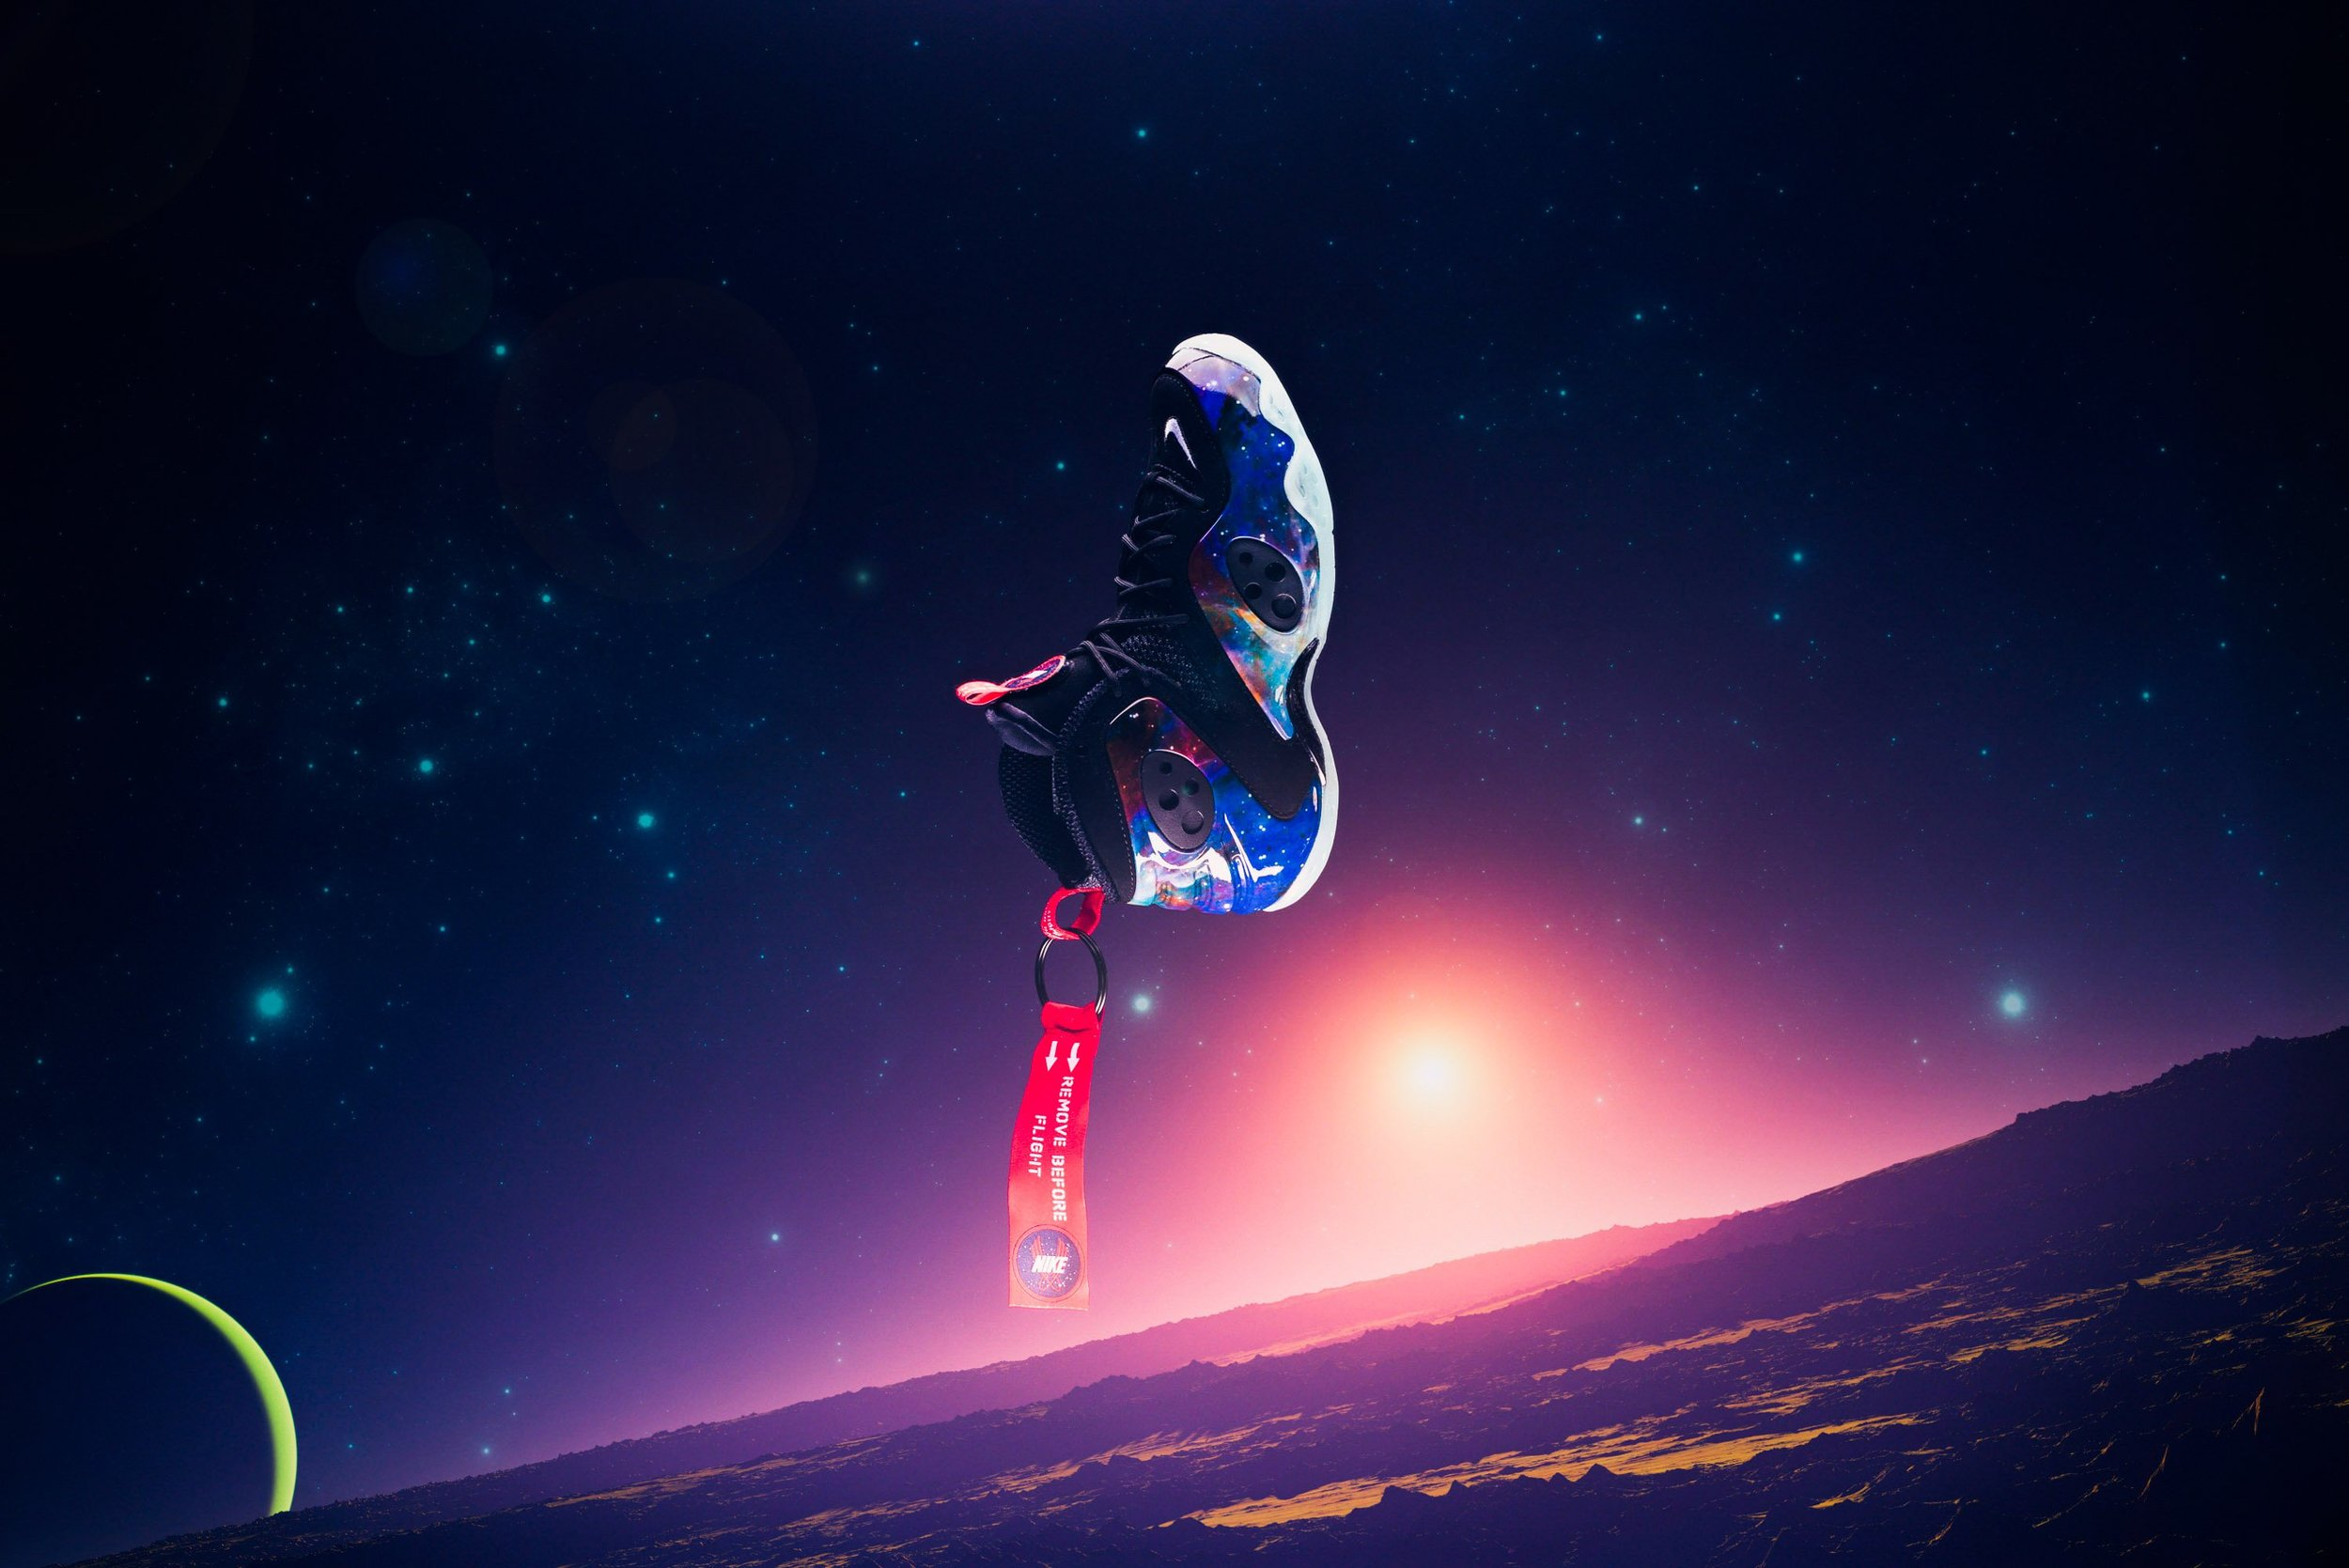 Nike_Zoom_Rookie_PRM_Black_Black_Action_red_Galaxy_CI2120-001_sneaker_Politics_Last_edit-8.jpg